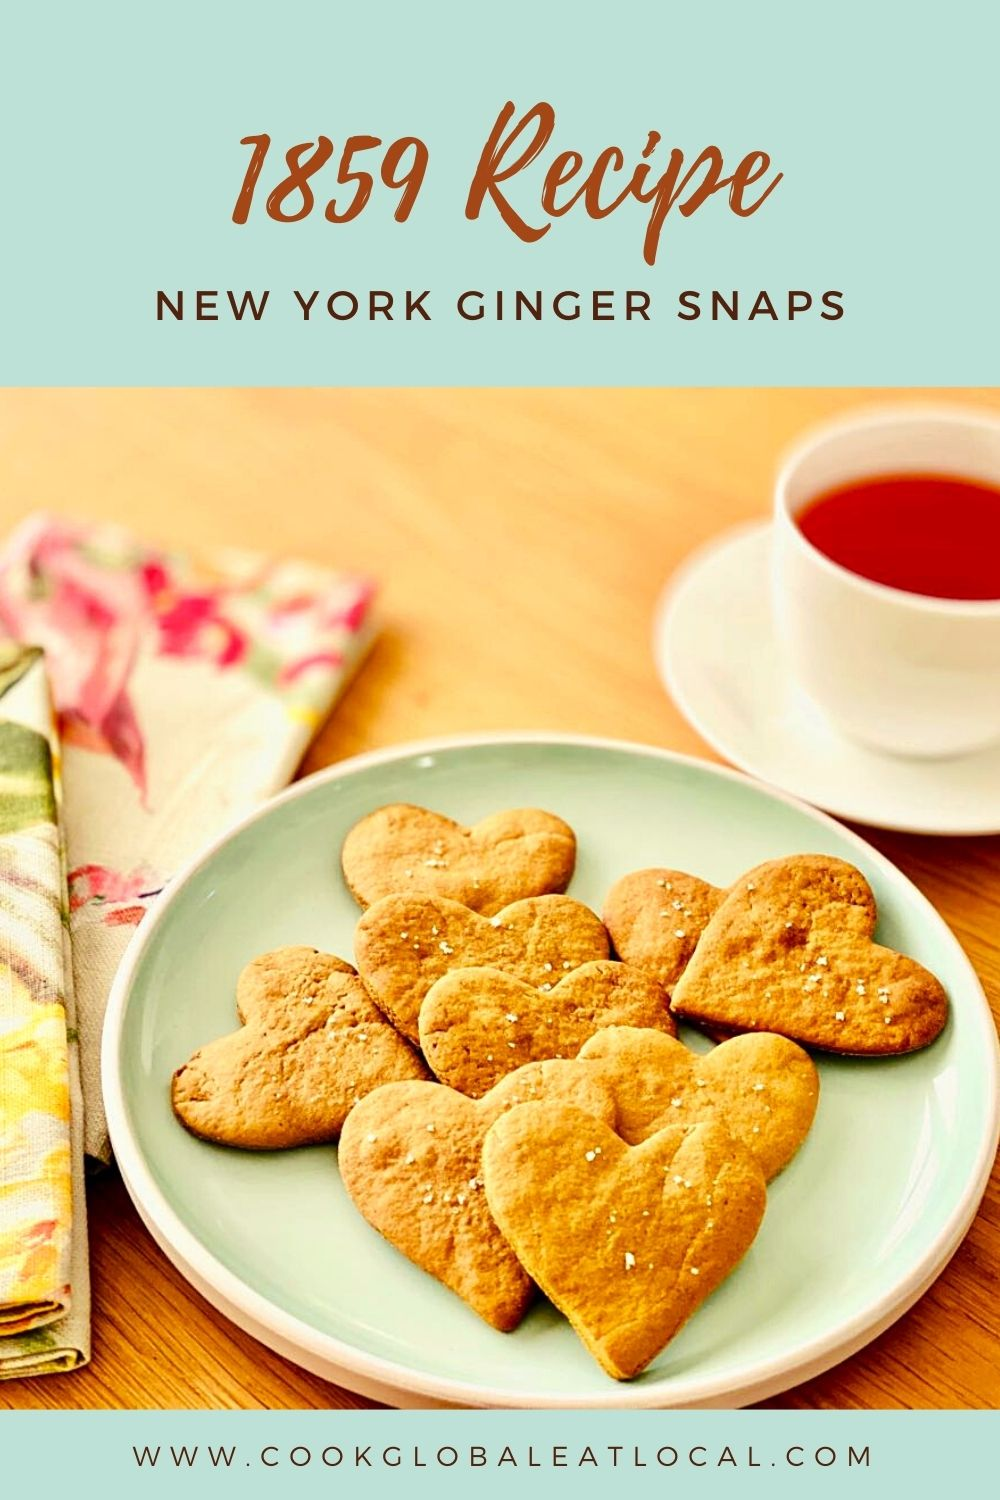 New York Ginger Snaps, A Recipe from 1859 | cookglobaleatlocal.com